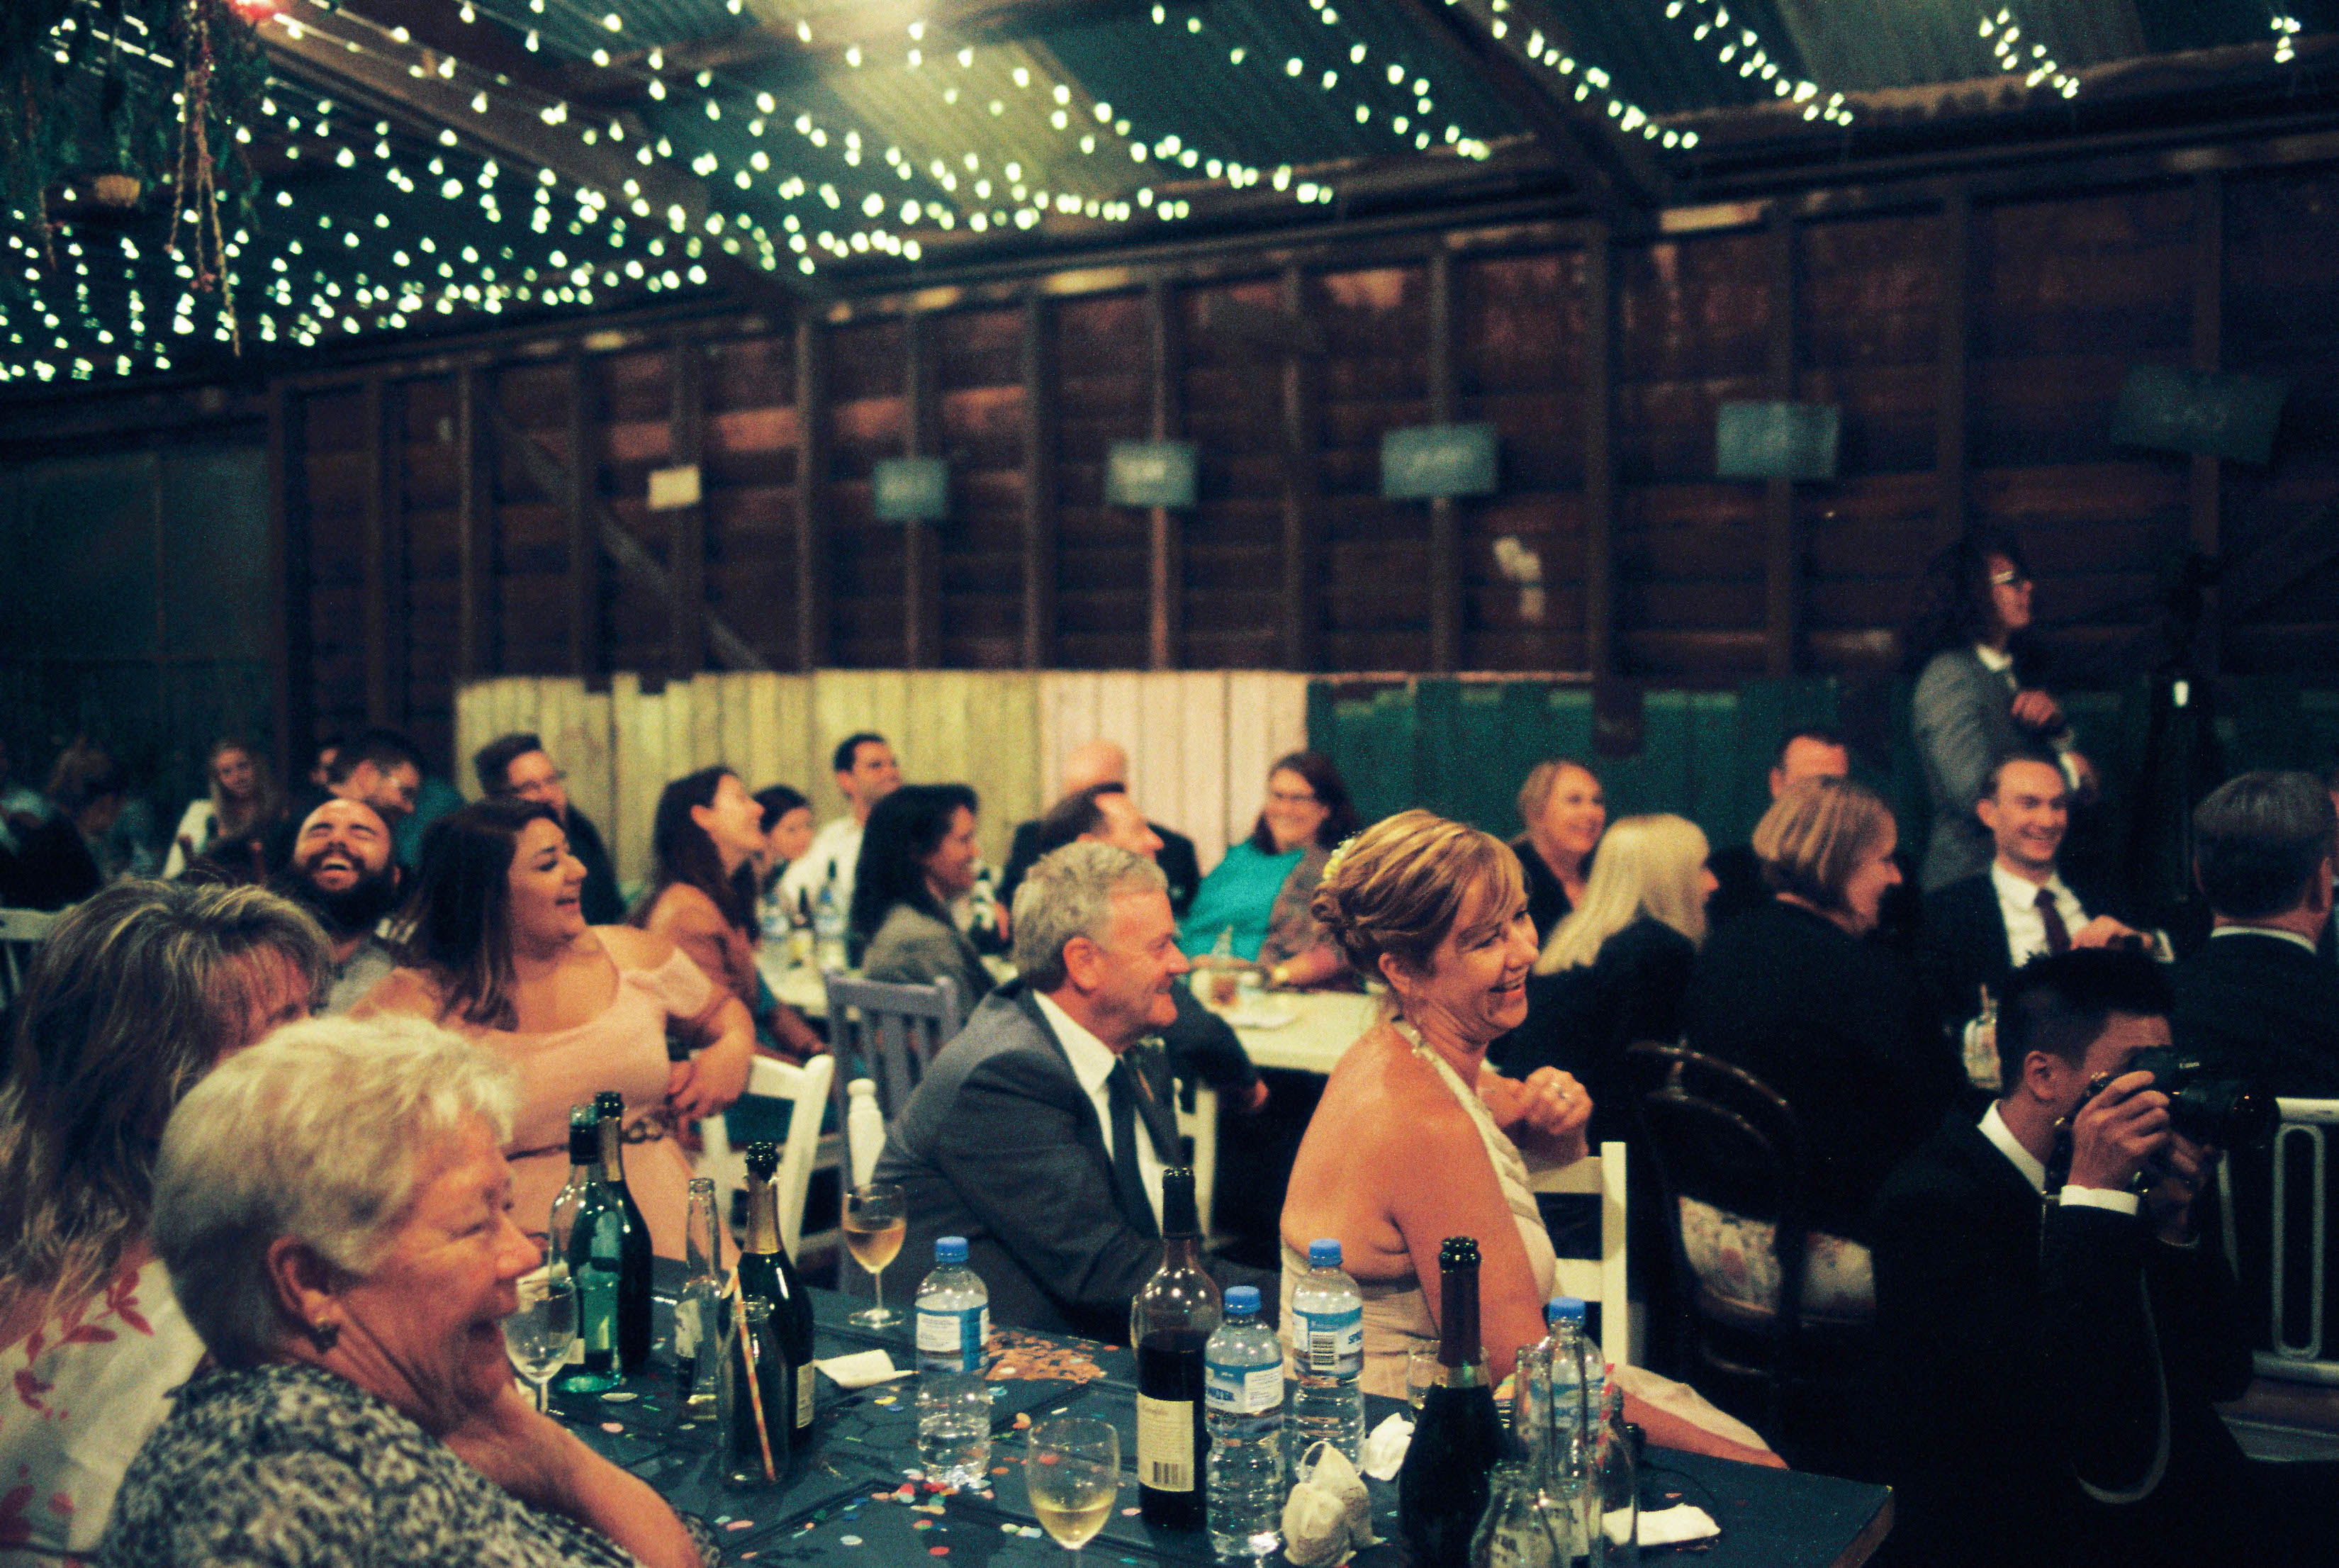 A candid photo of guests looking on during the speeches at a Shearing Shed Wedding Reception